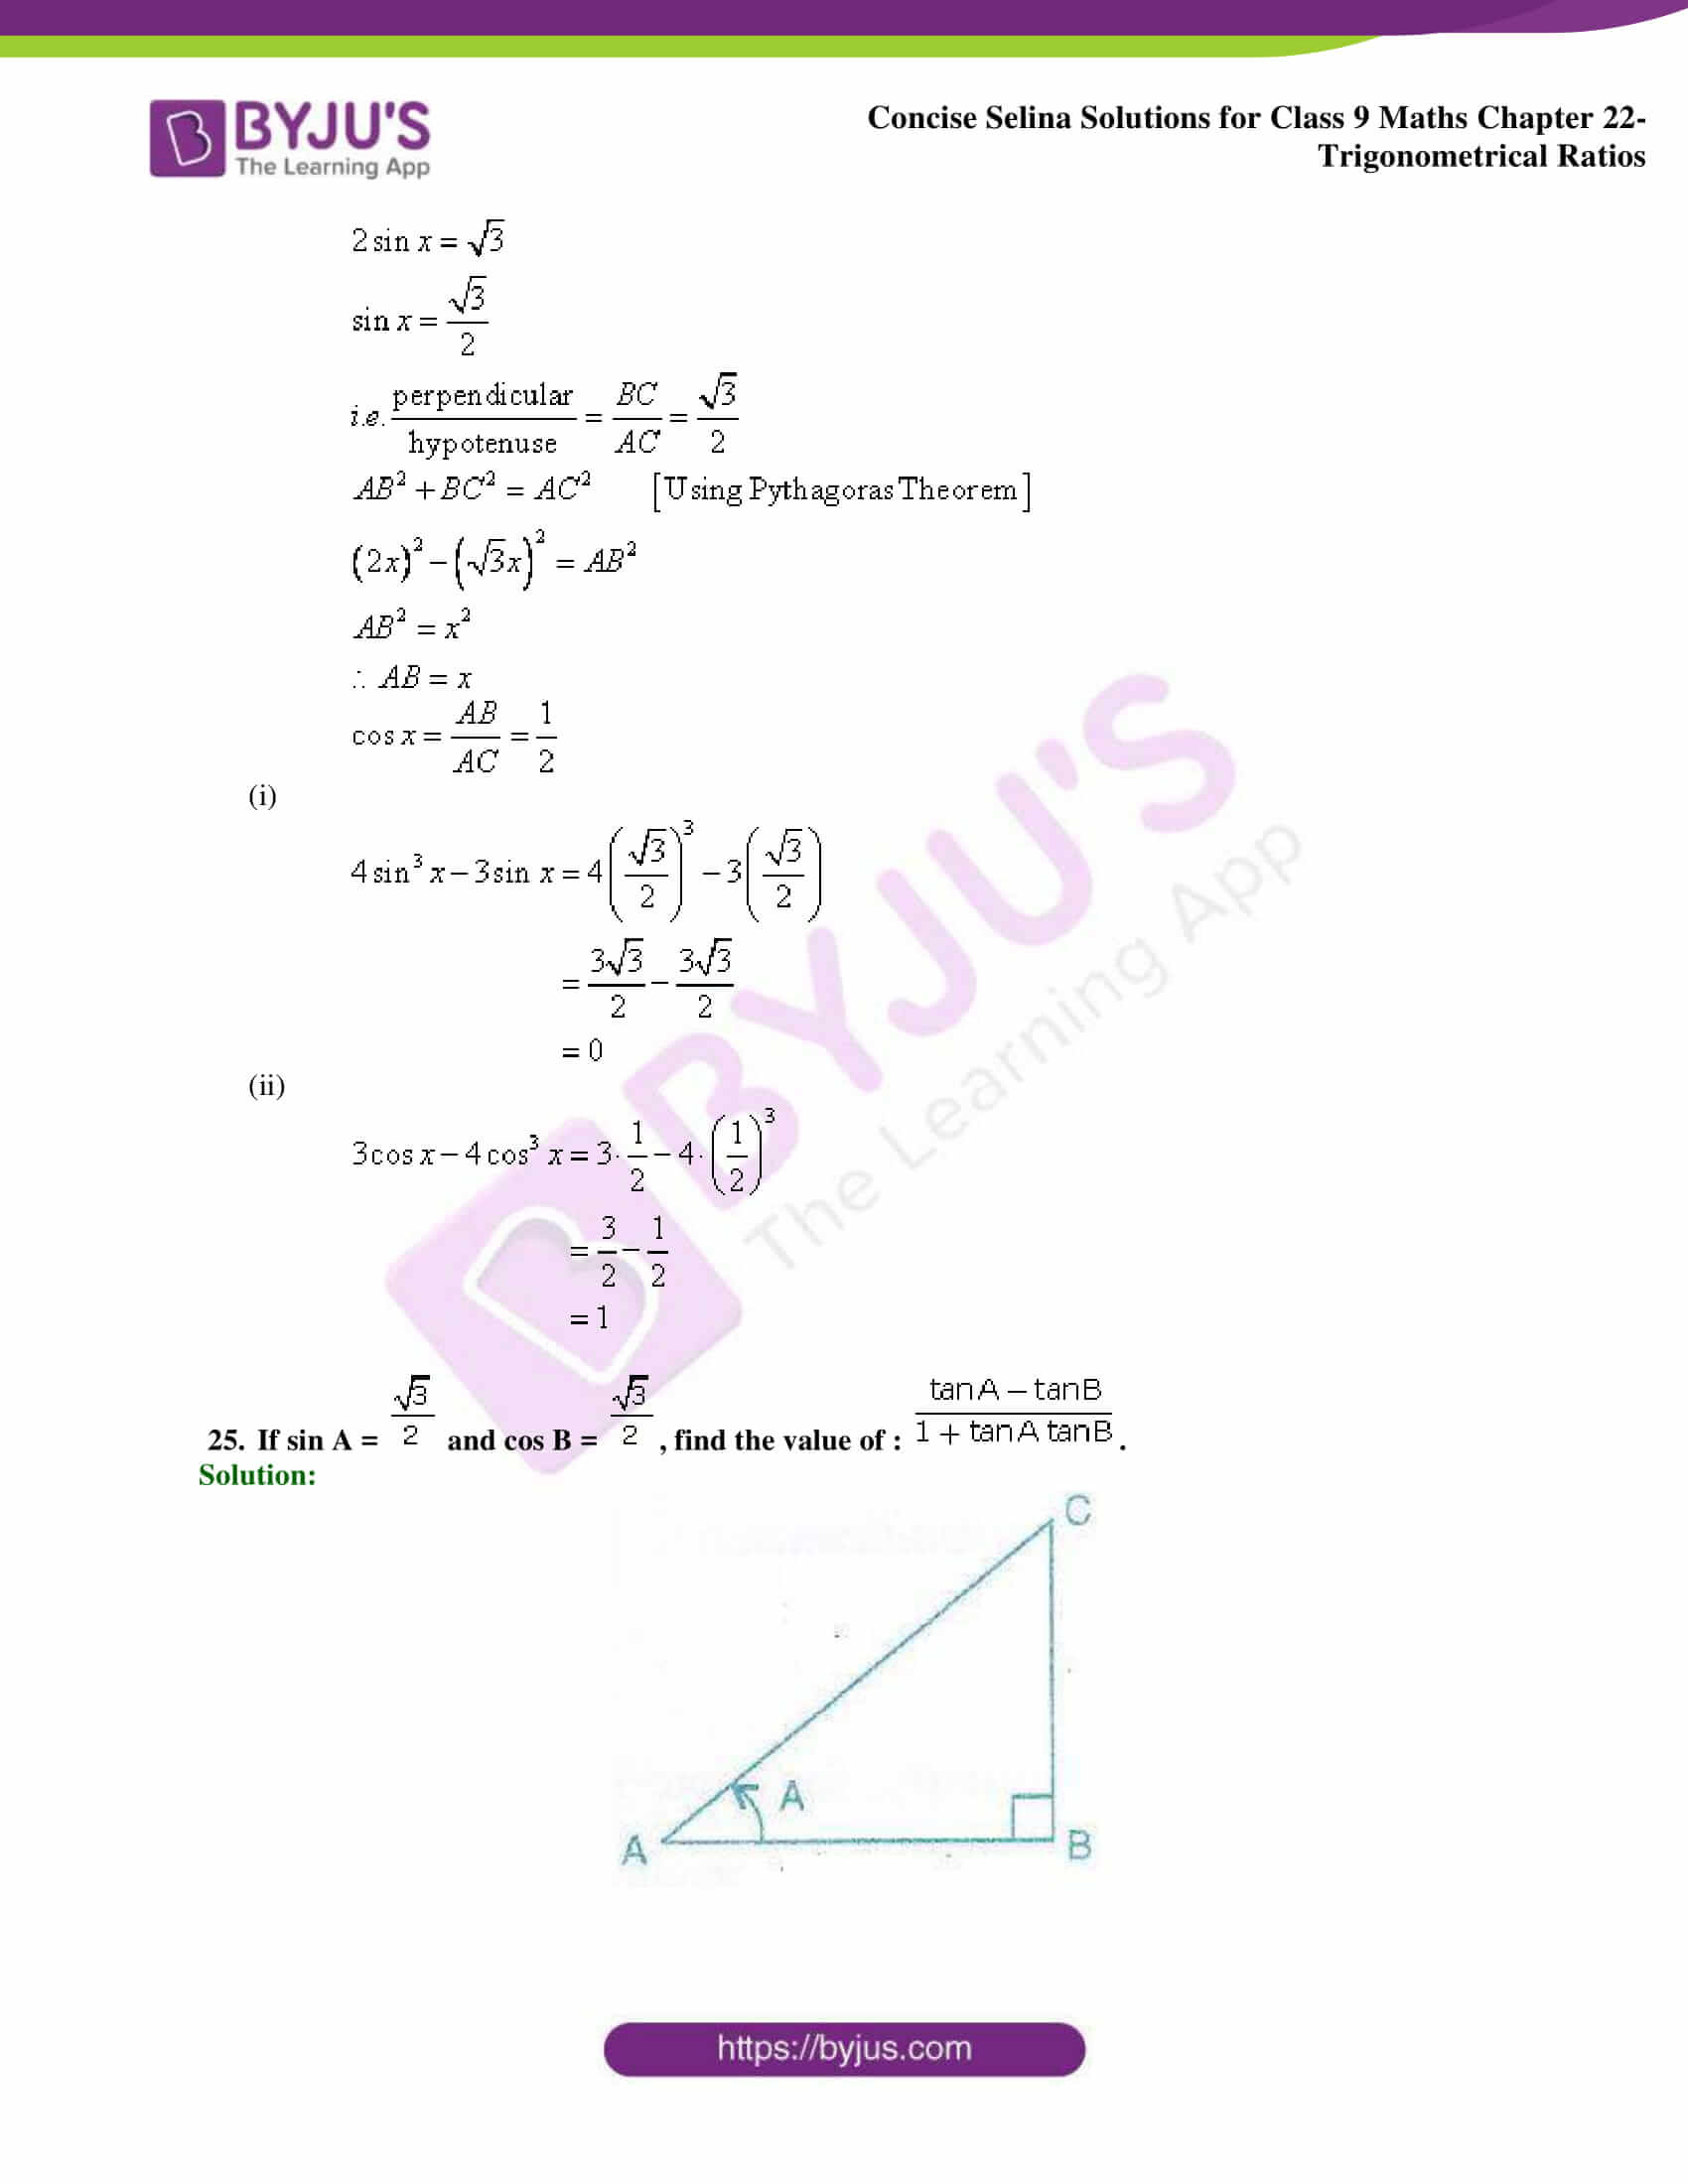 Concise Selina Solutions Class 9 Maths Chapter 22 Trigonometrical Ratios part 46